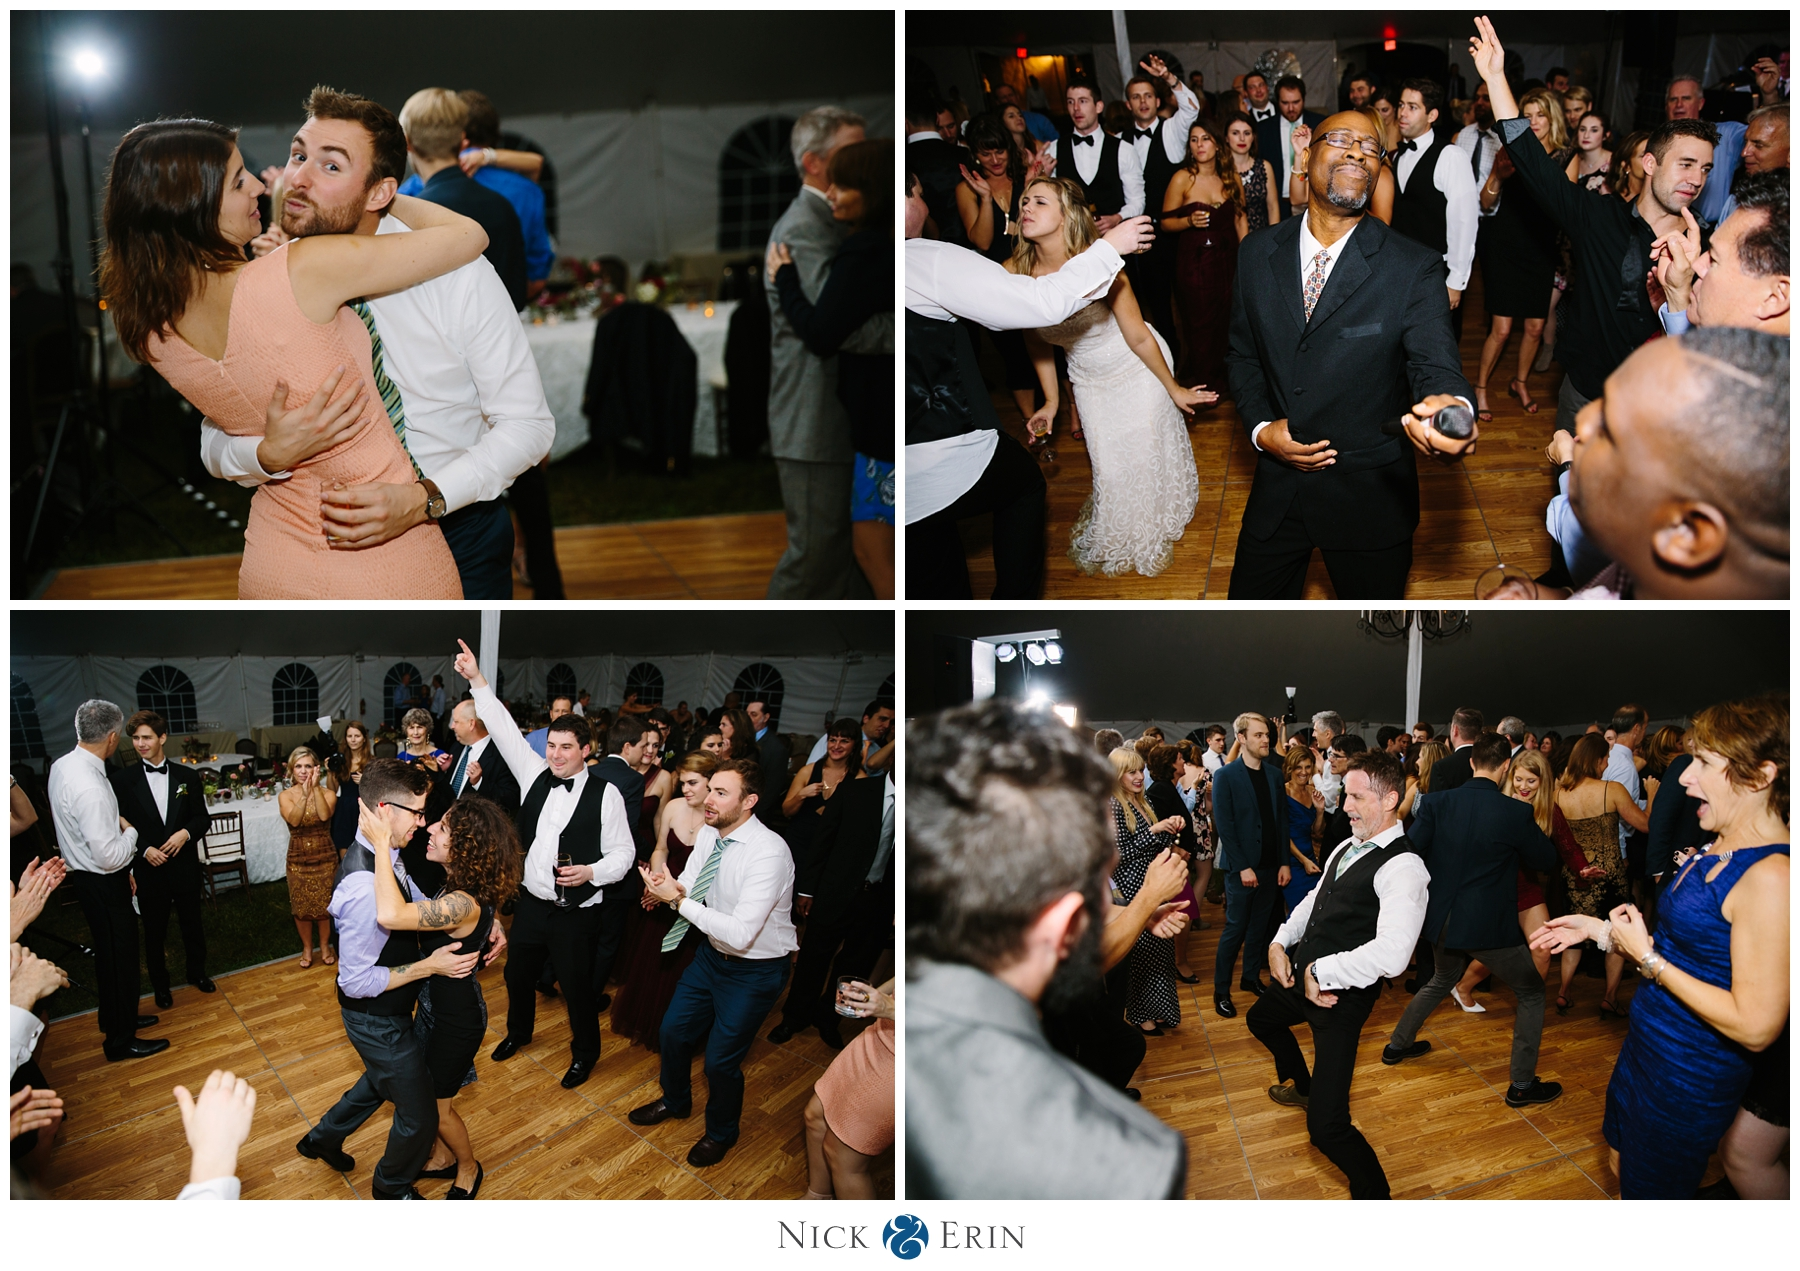 donner_photography_leesburg-virginia-wedding_erin-stuart_0031